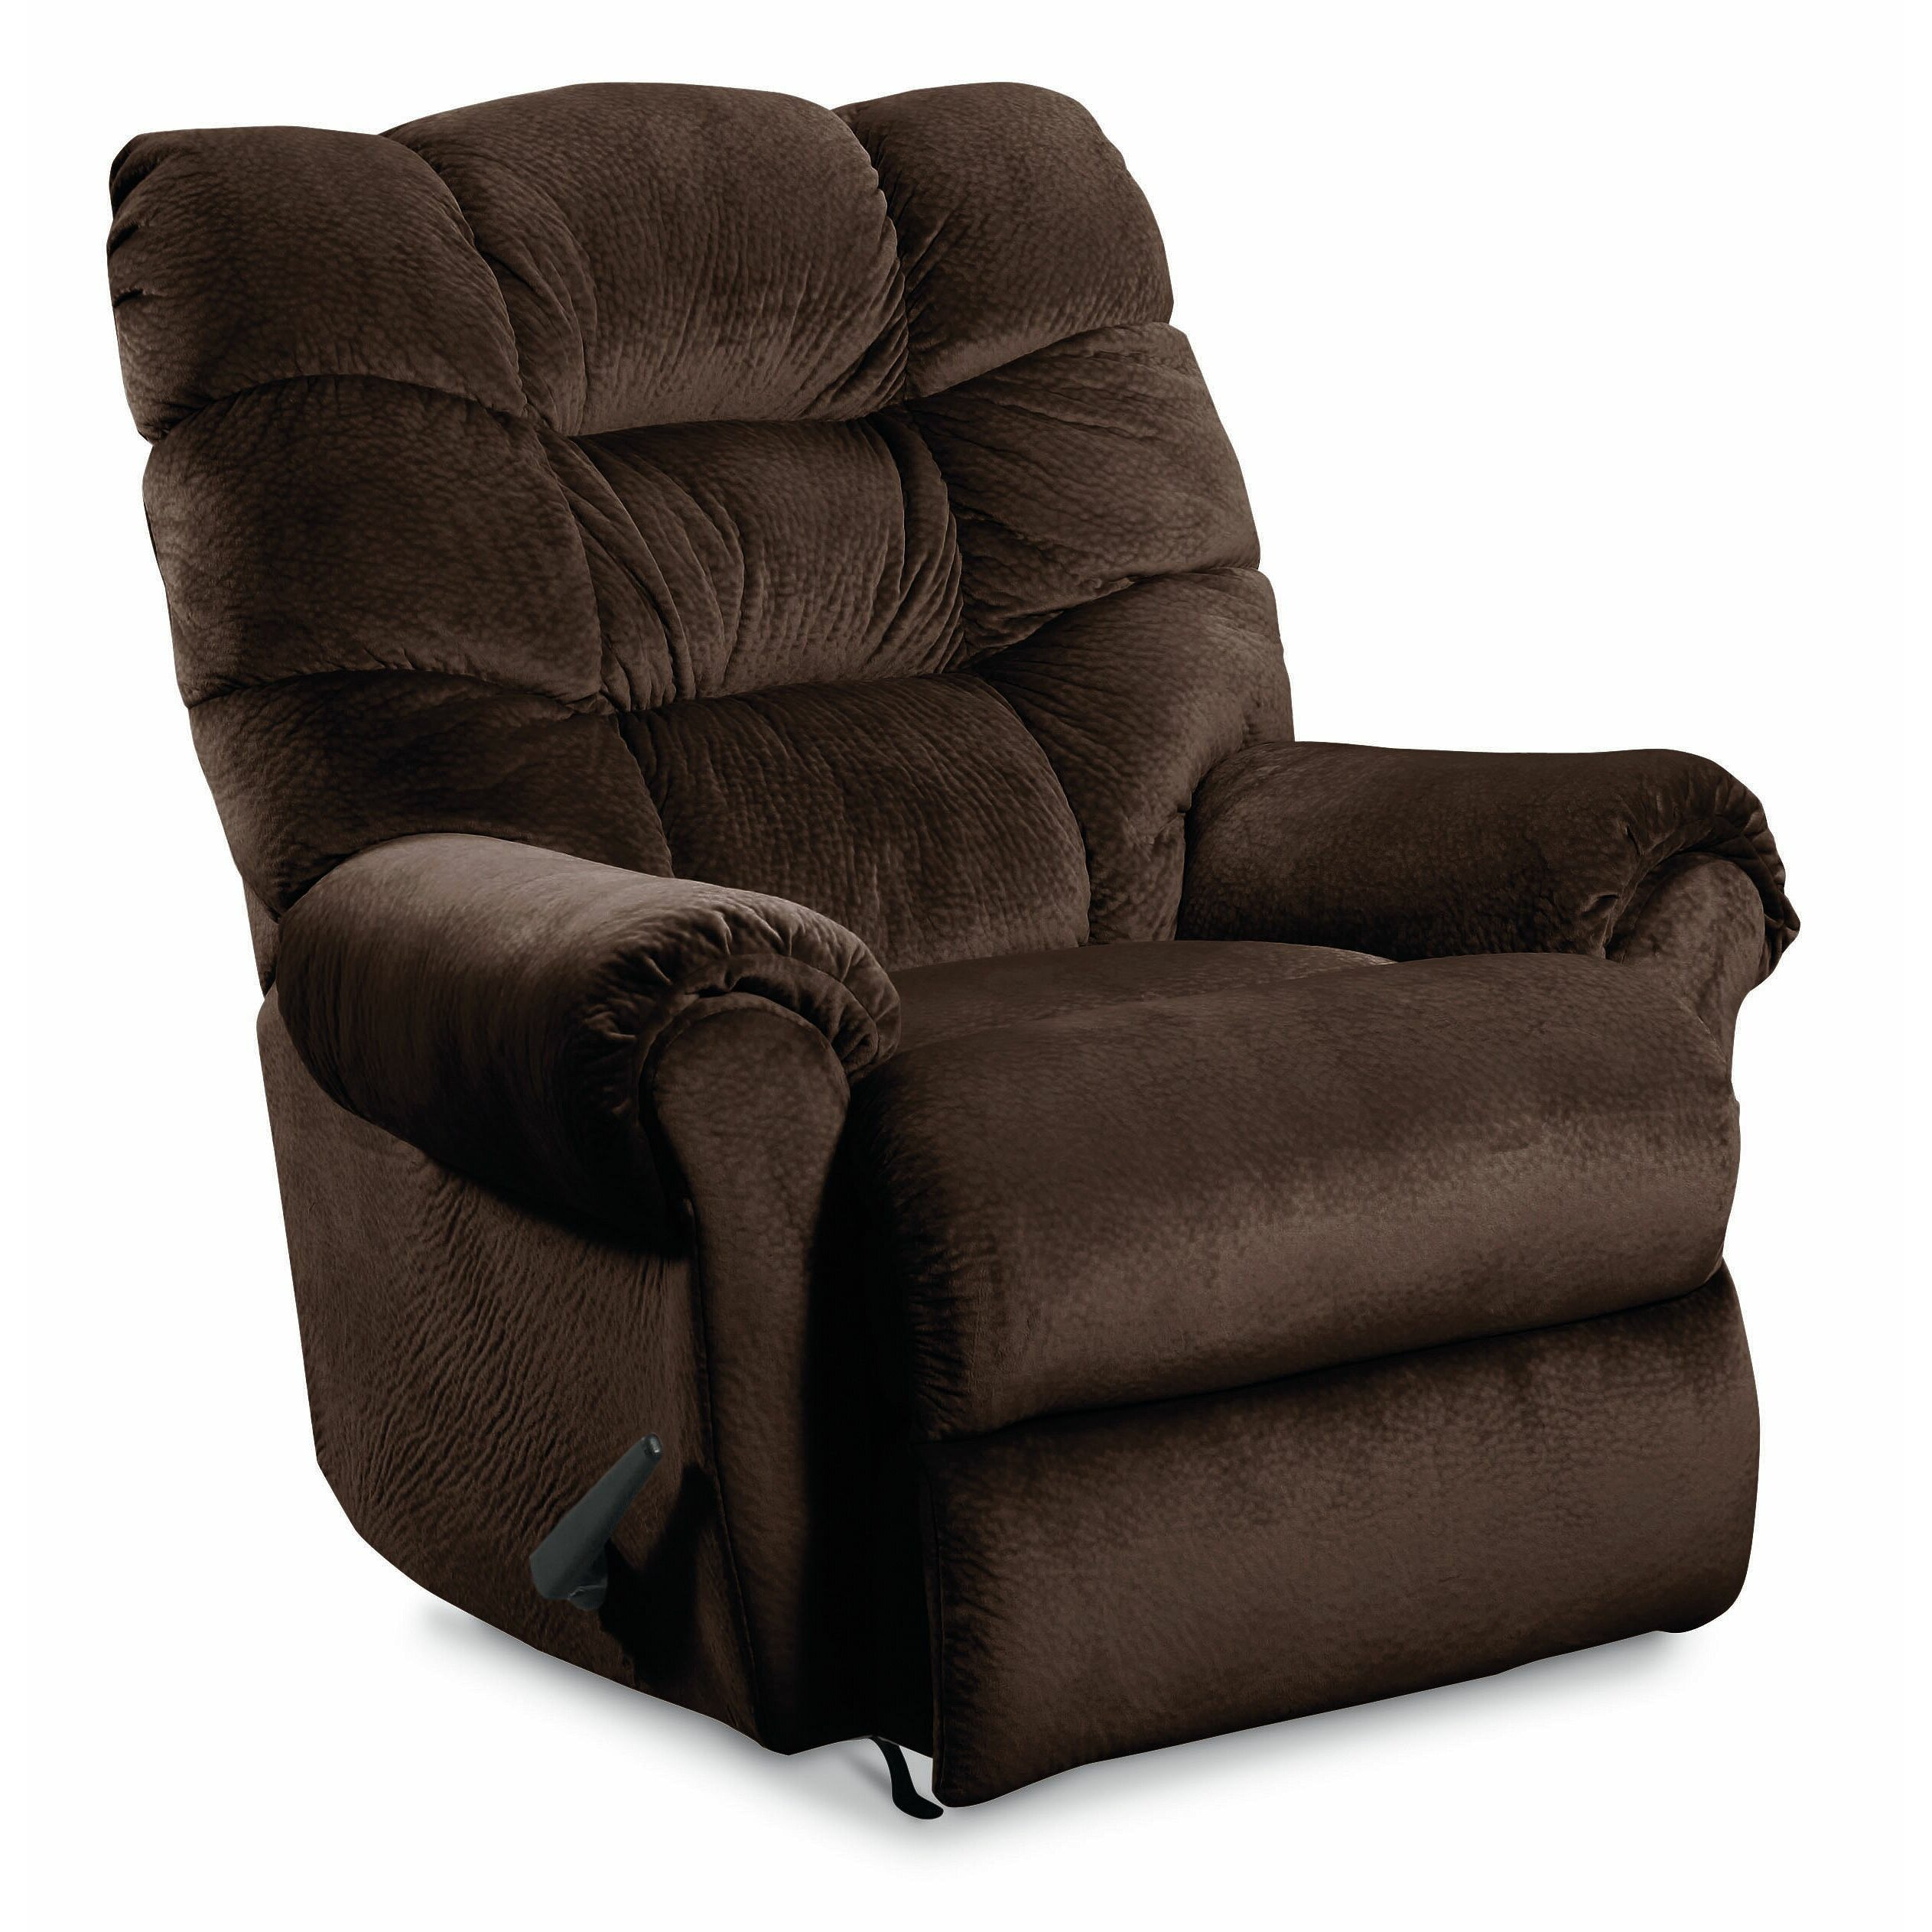 Lane furniture zip recliner wayfair for Lane furniture